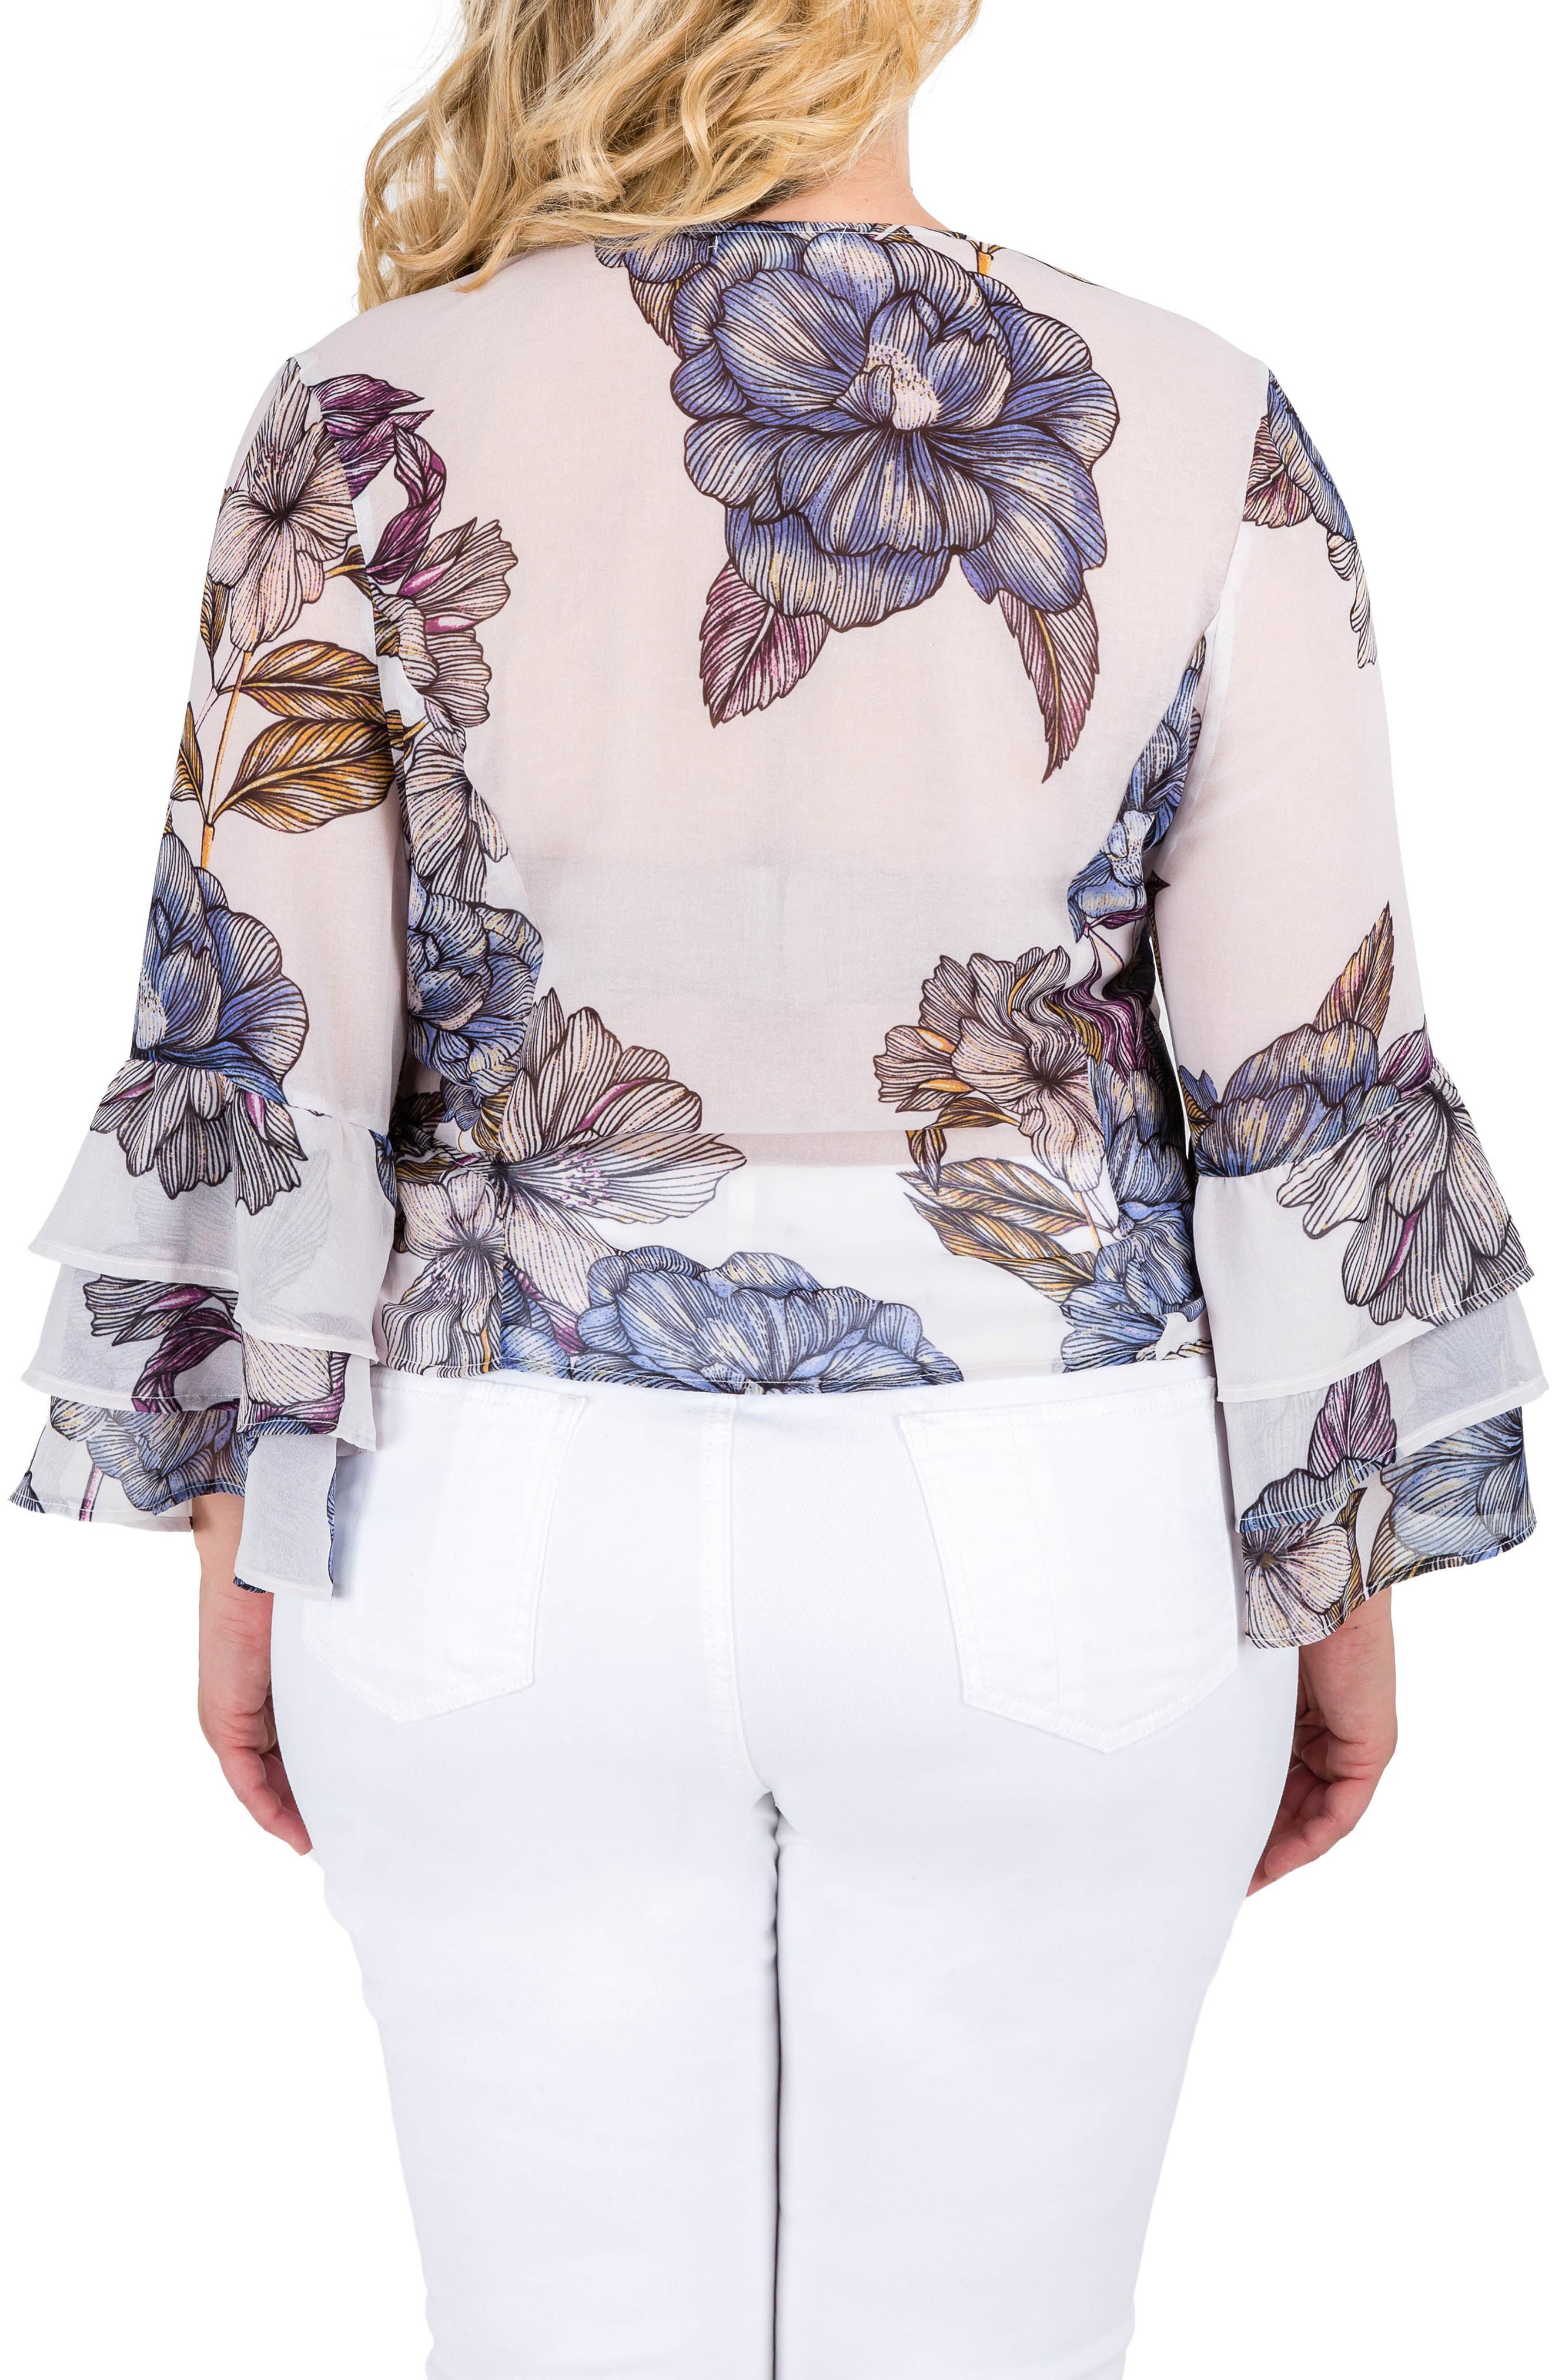 Miley Bell Sleeve Floral Wrap Top,                             Alternate thumbnail 2, color,                             Light Gray Floral Print